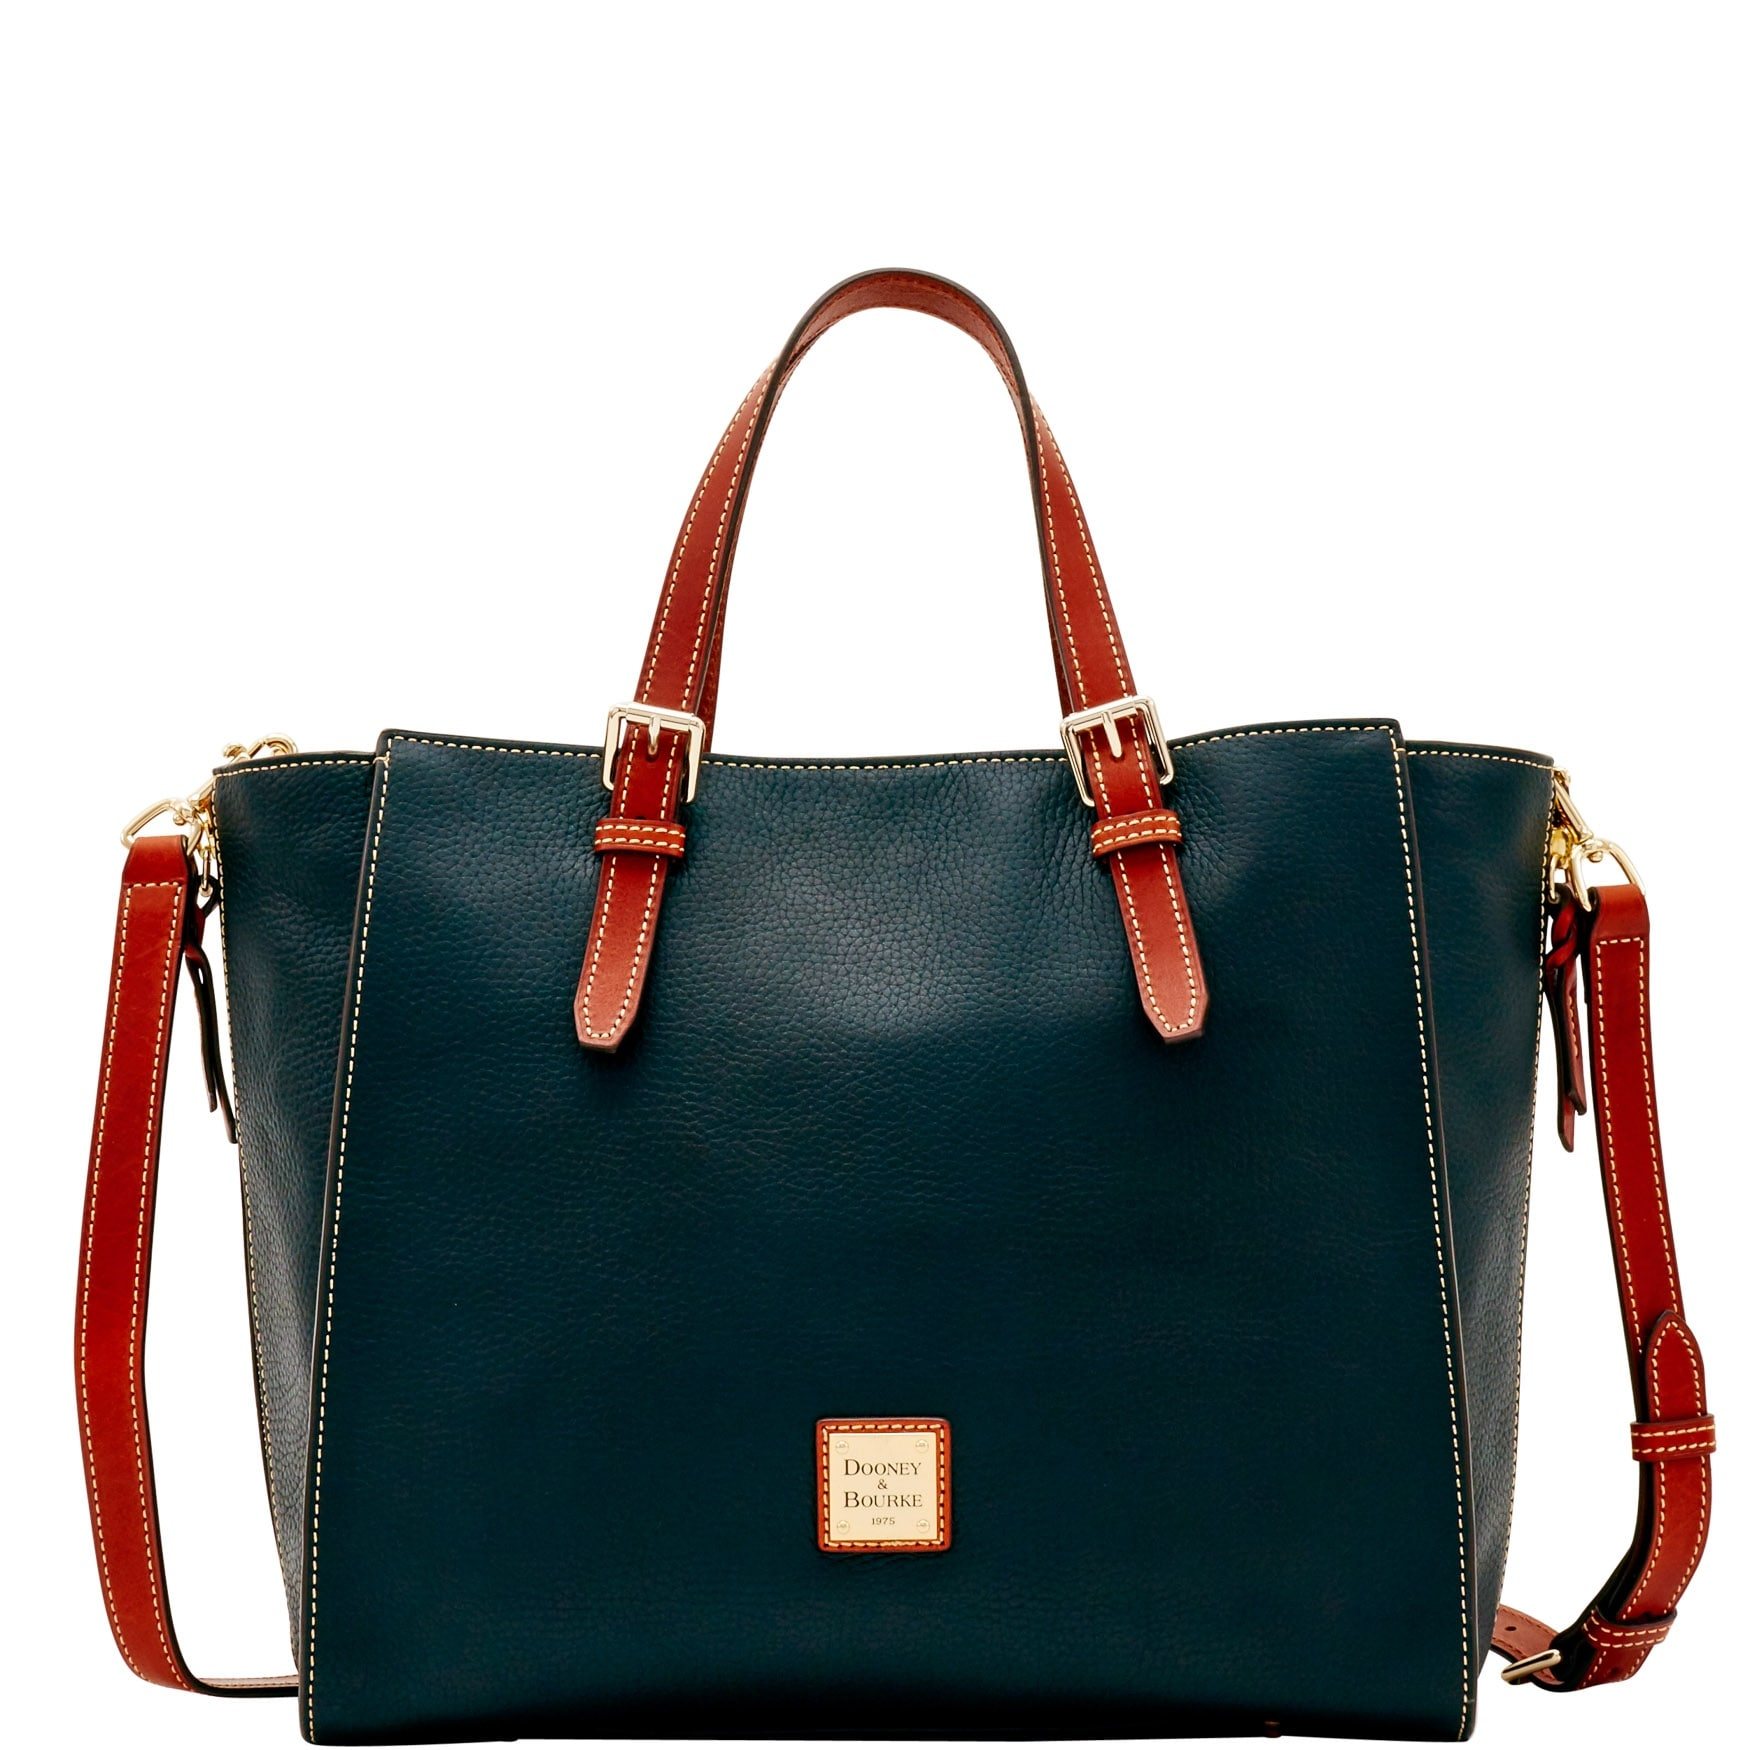 Dooney   Bourke Pebble Grain Large Mindy Top Handle Bag (Introduced by  Dooney   Bourke at  348 in Sep 2017) 53e7b44dd8